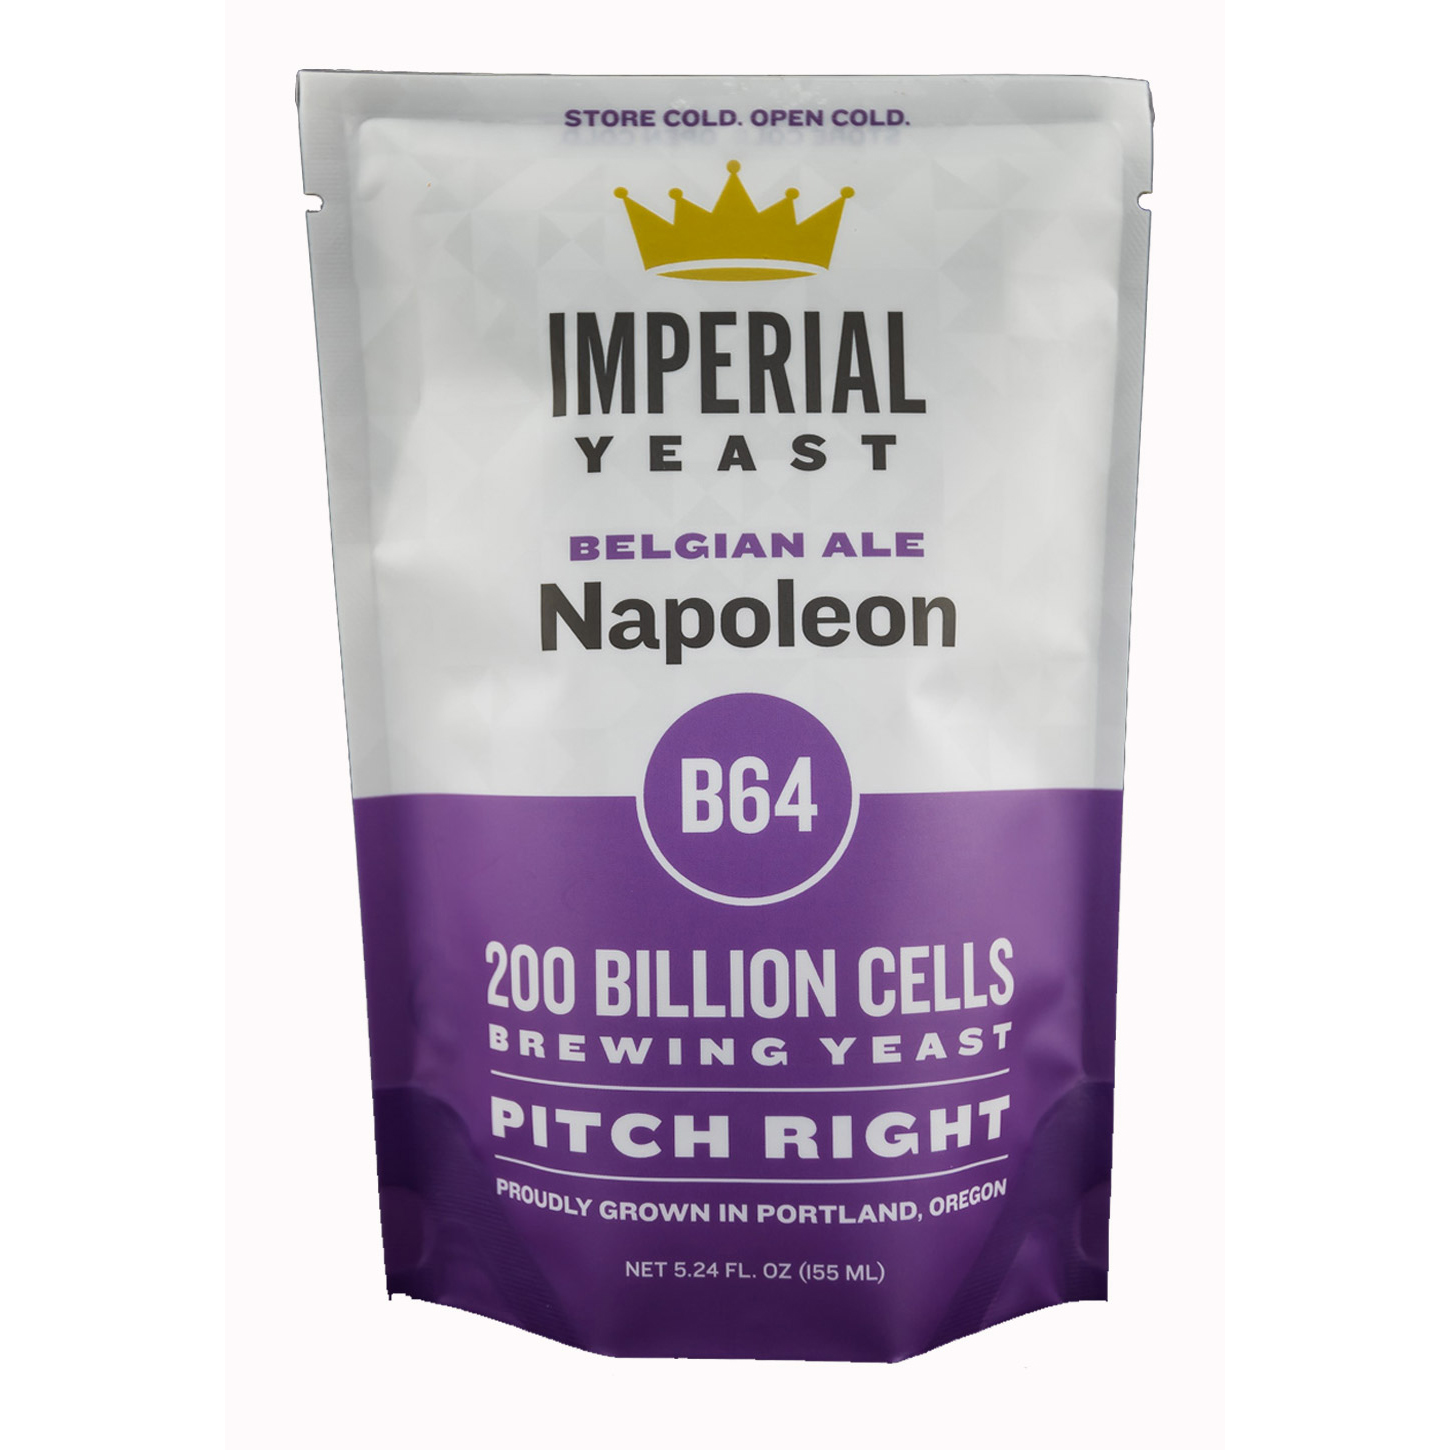 B64 Napoleon Ale Imperial Liquid Yeast Certified Organic